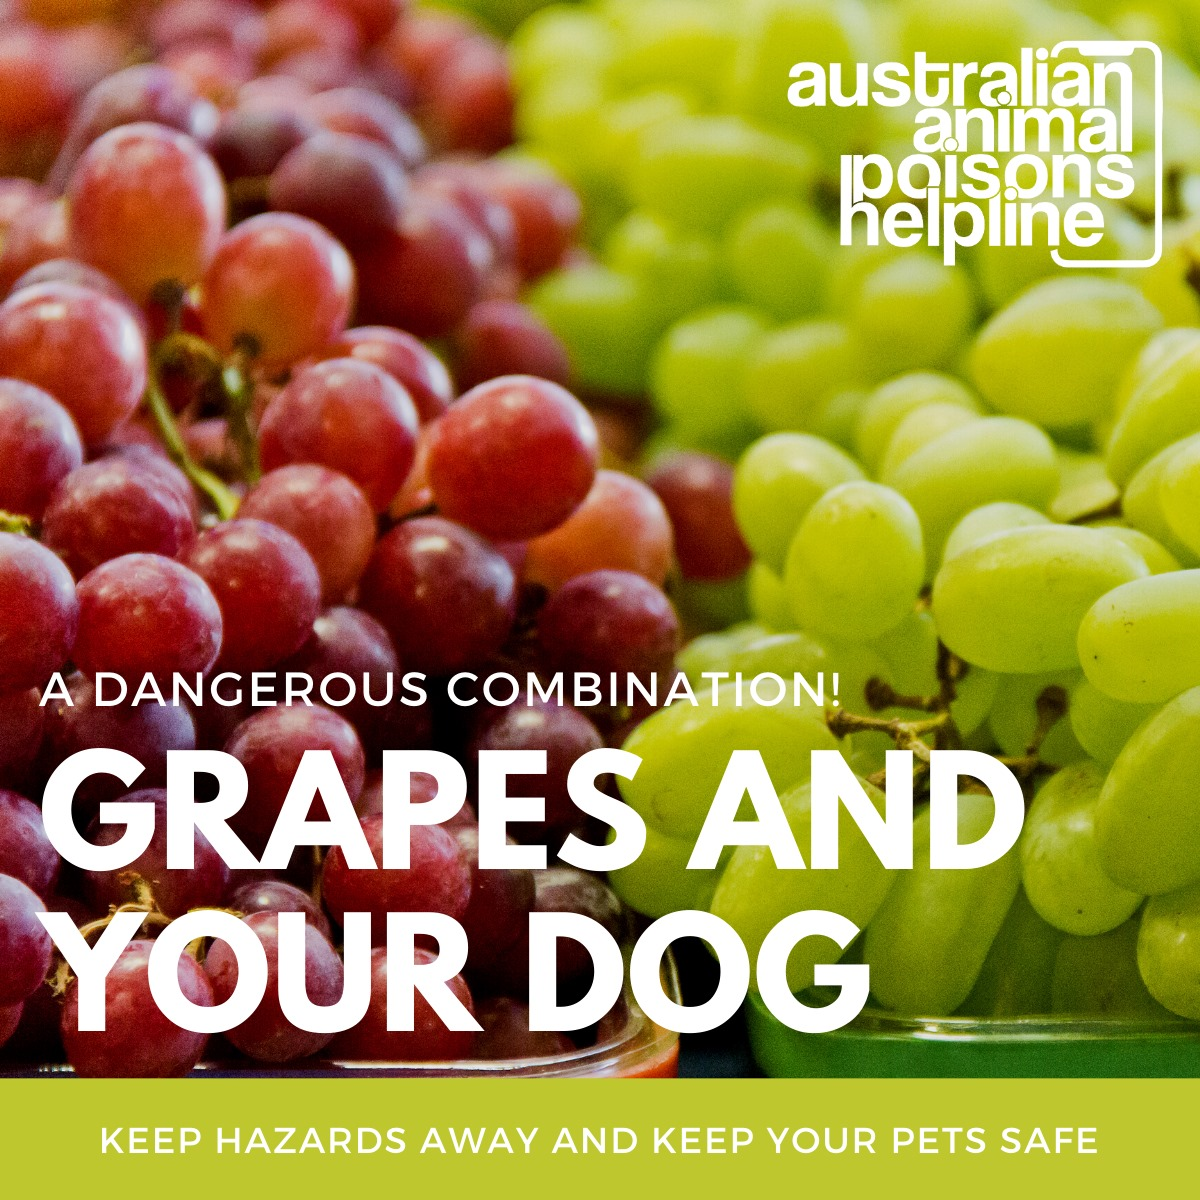 Grapes and your dog